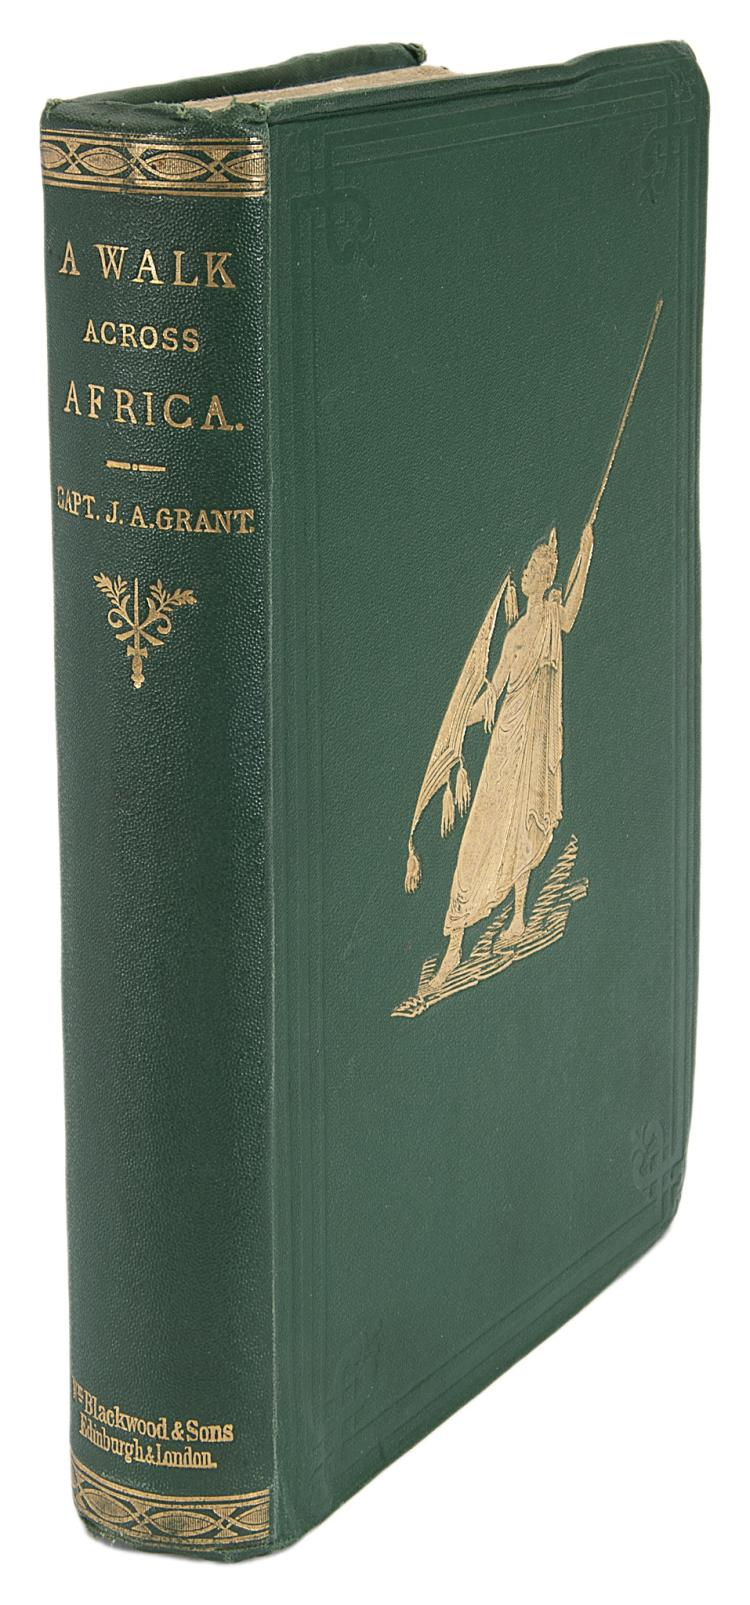 Africa.- Grant (James Augustus) A Walk Across Africa or Domestic Scenes from My Nile Journal, 1st ed., orig. cloth, Edinburgh & London, 1864.